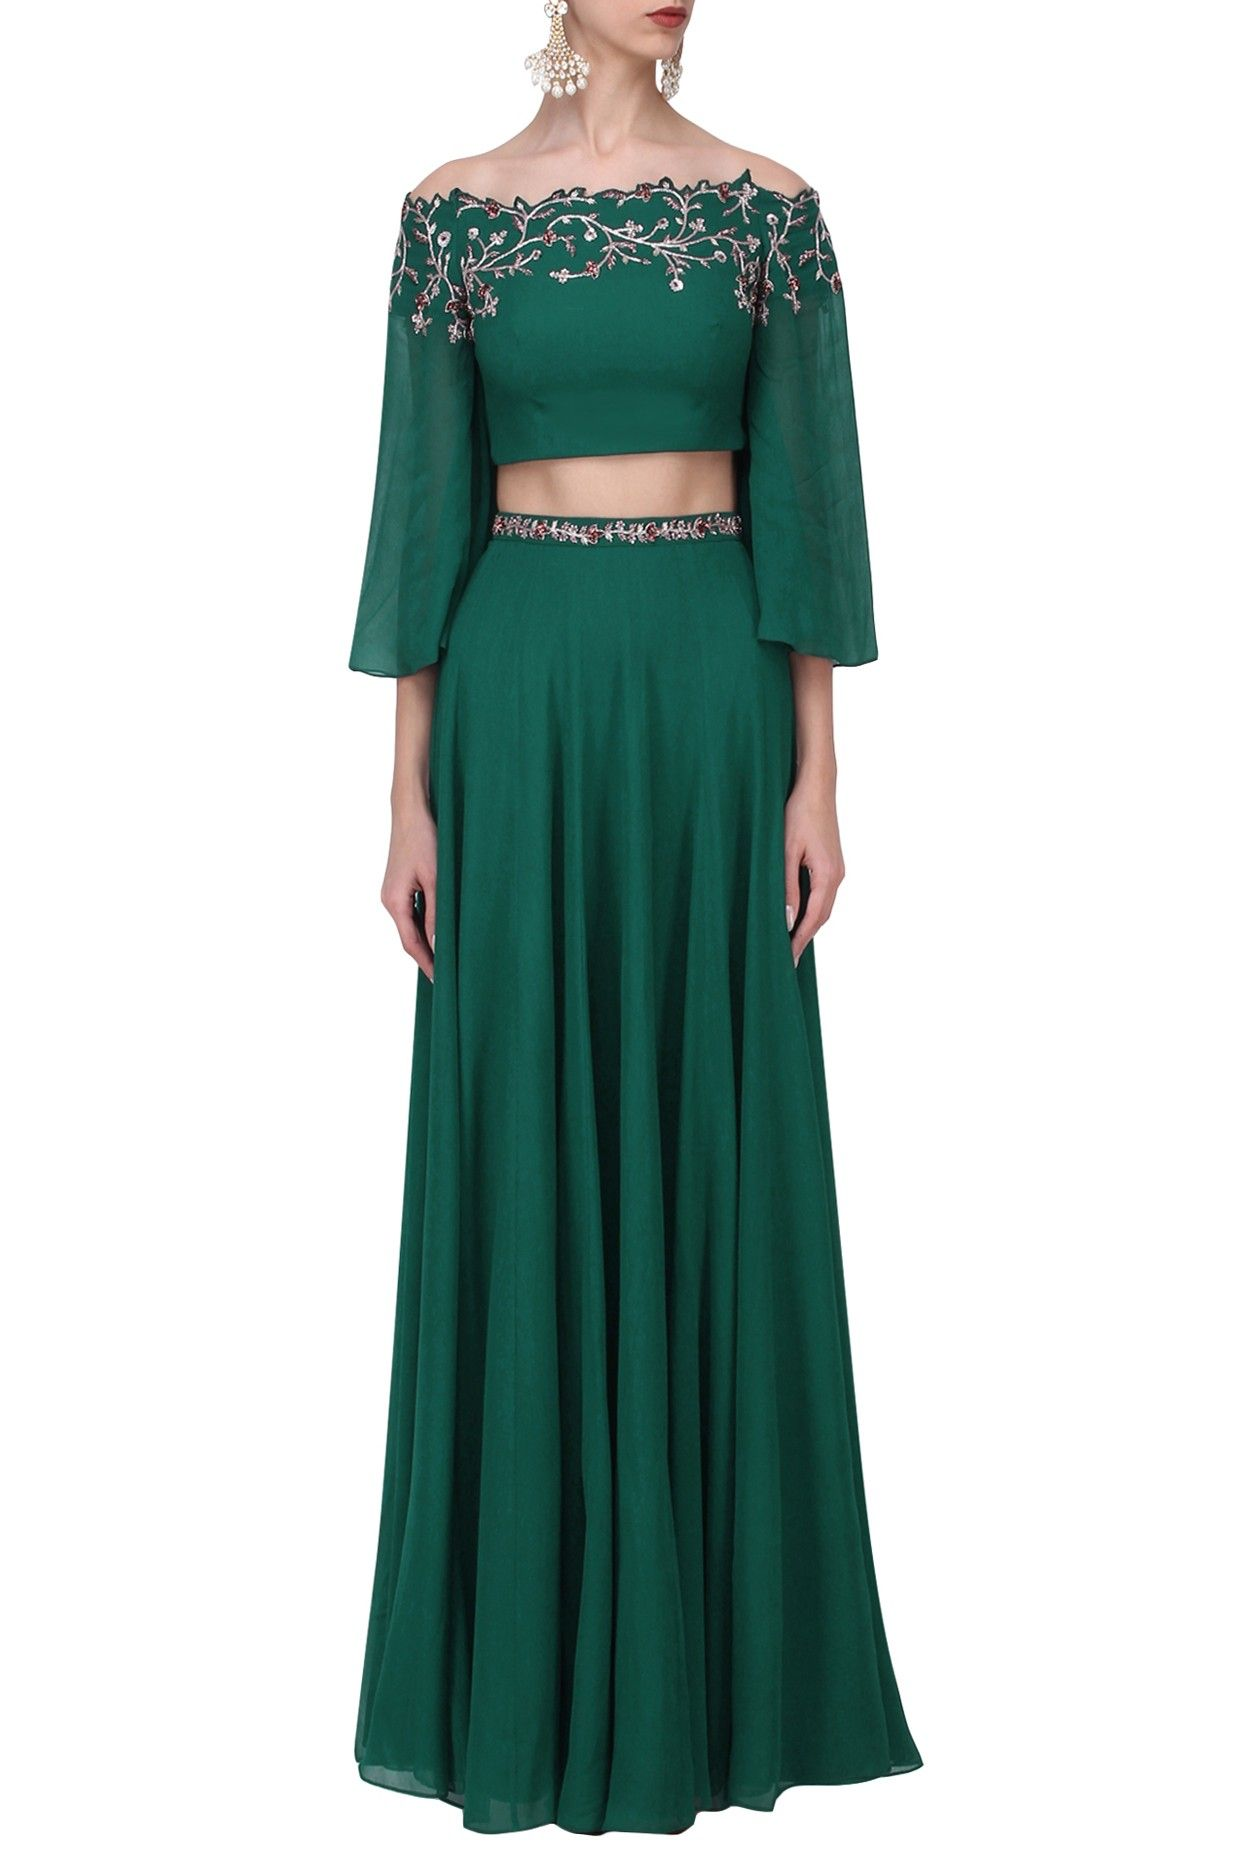 Bottle green long dress  POOJA PESHORIA Bottle Green Crystal and Cutdana Embellished Crop Top